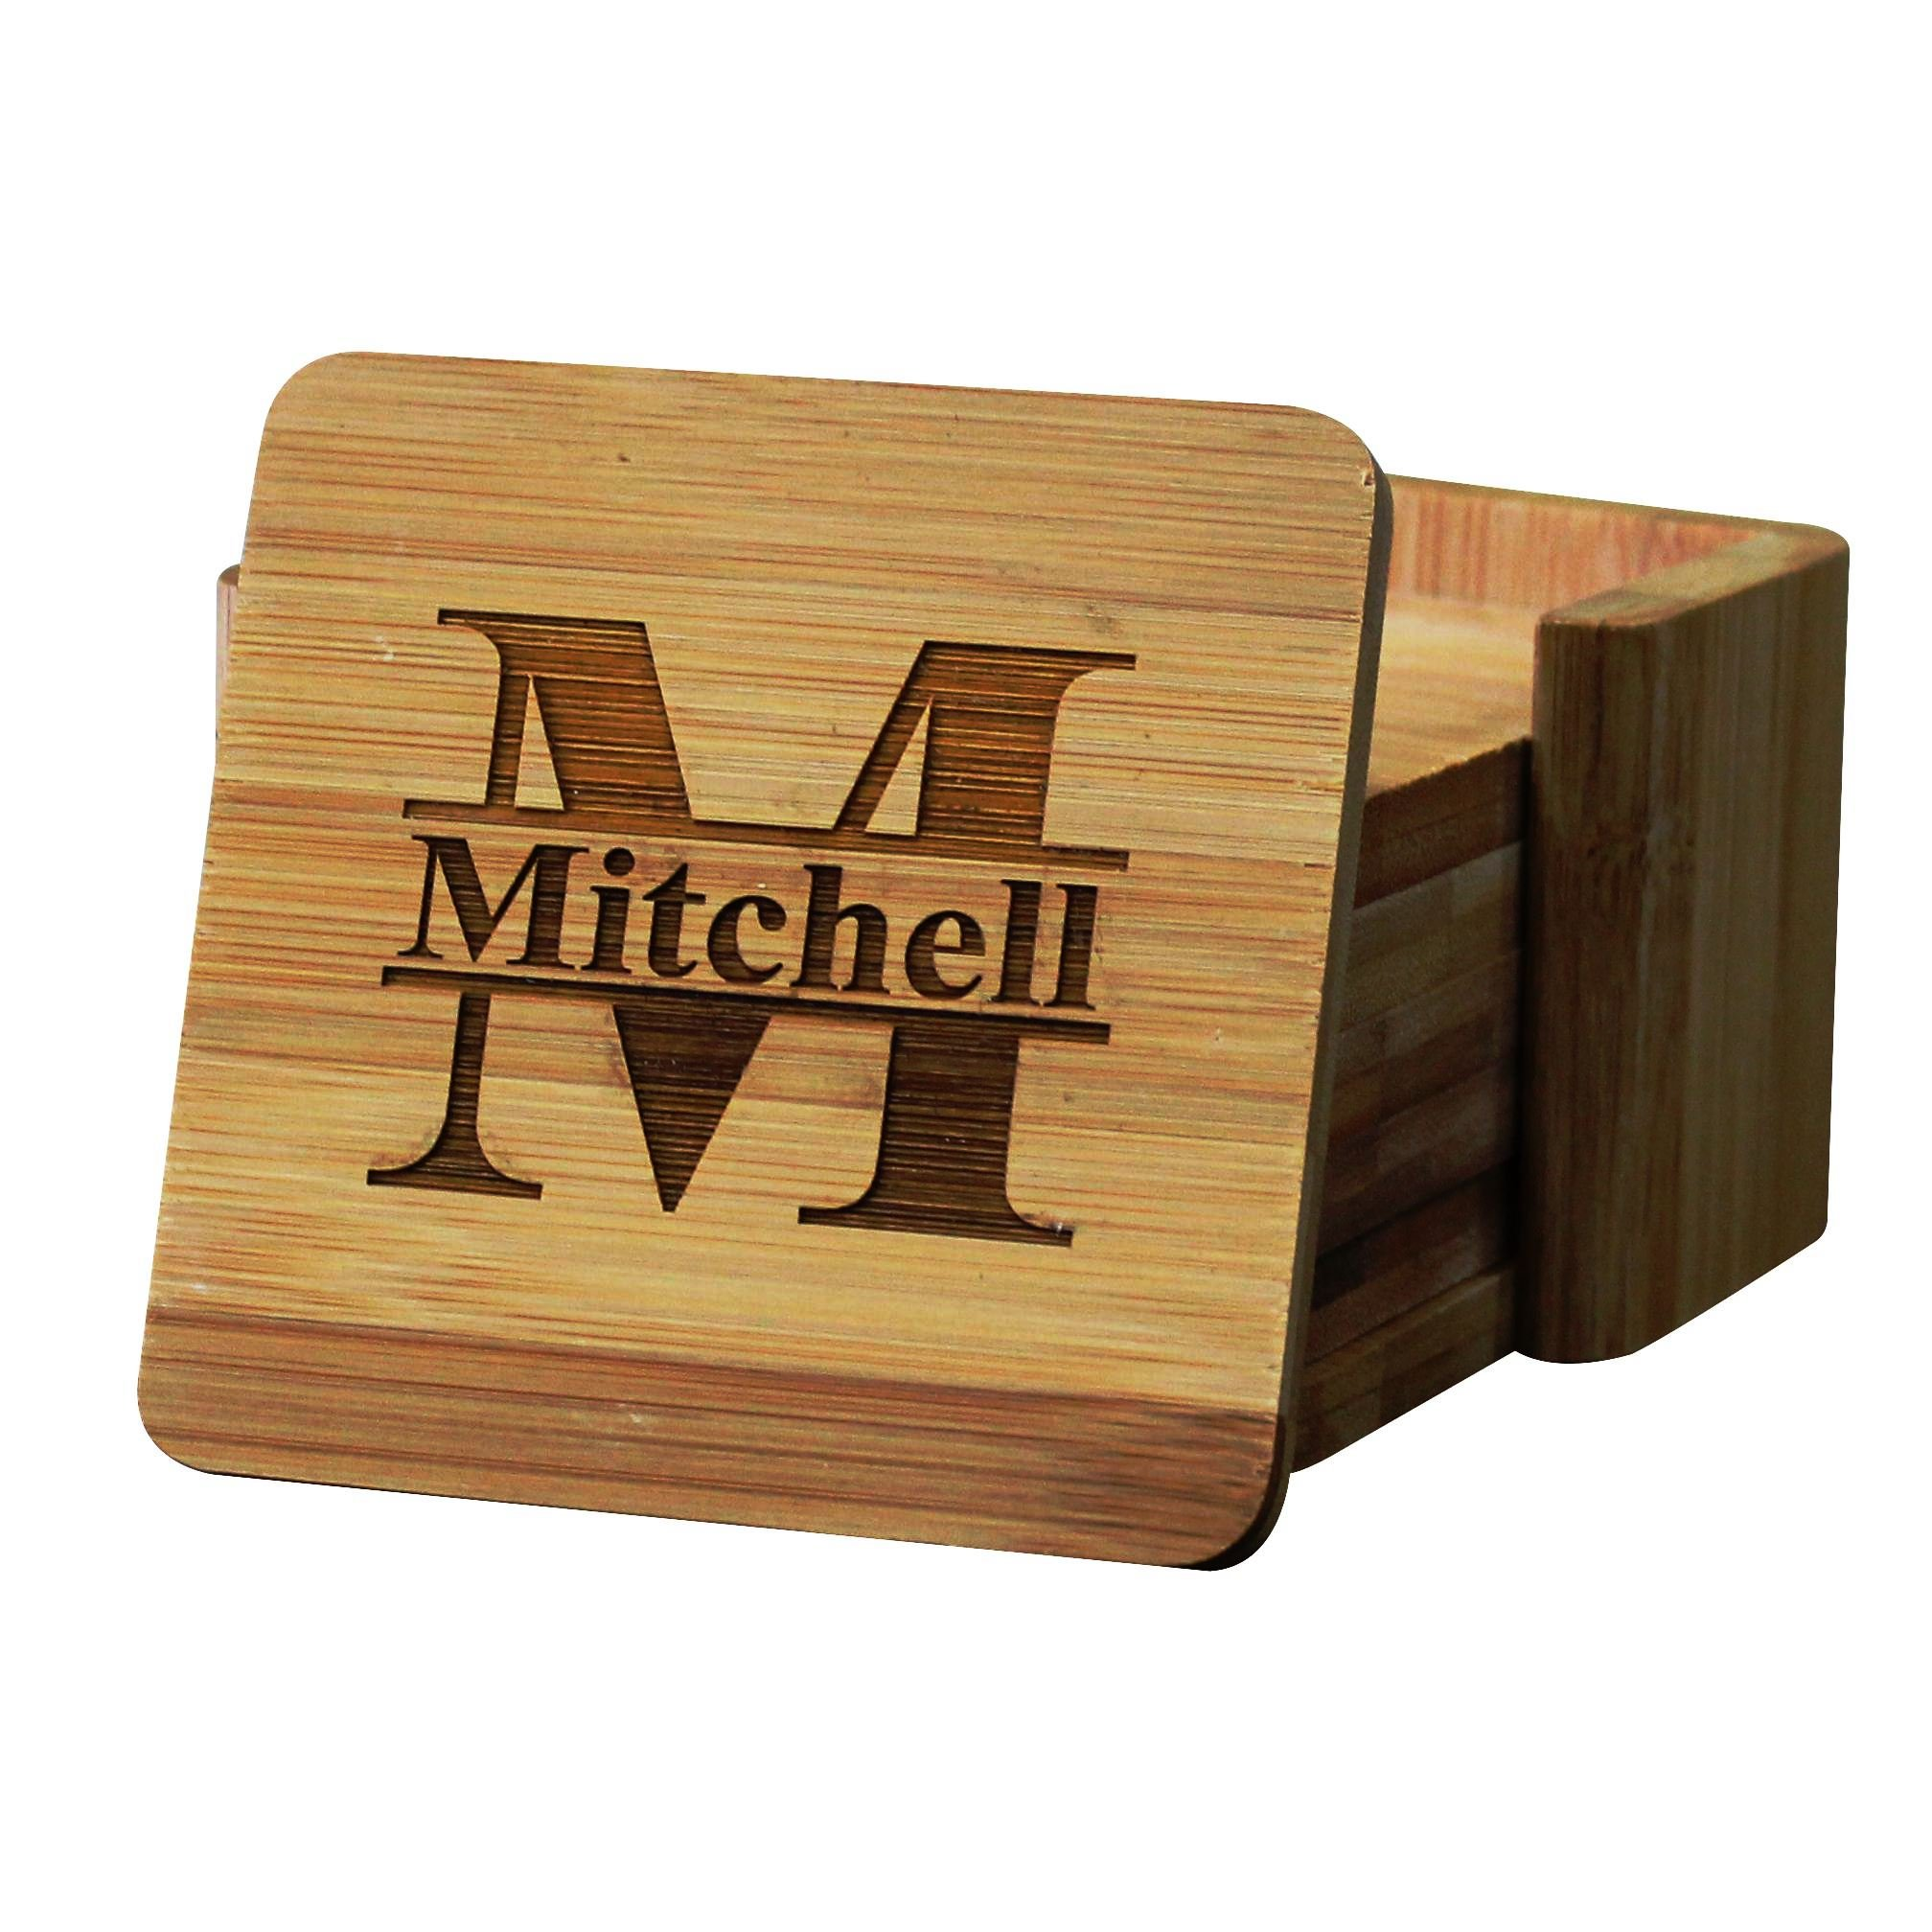 Personalized Coasters - Bamboo Coasters for Drinks with Holders - Square 7 Piece Set by My Personal Memories